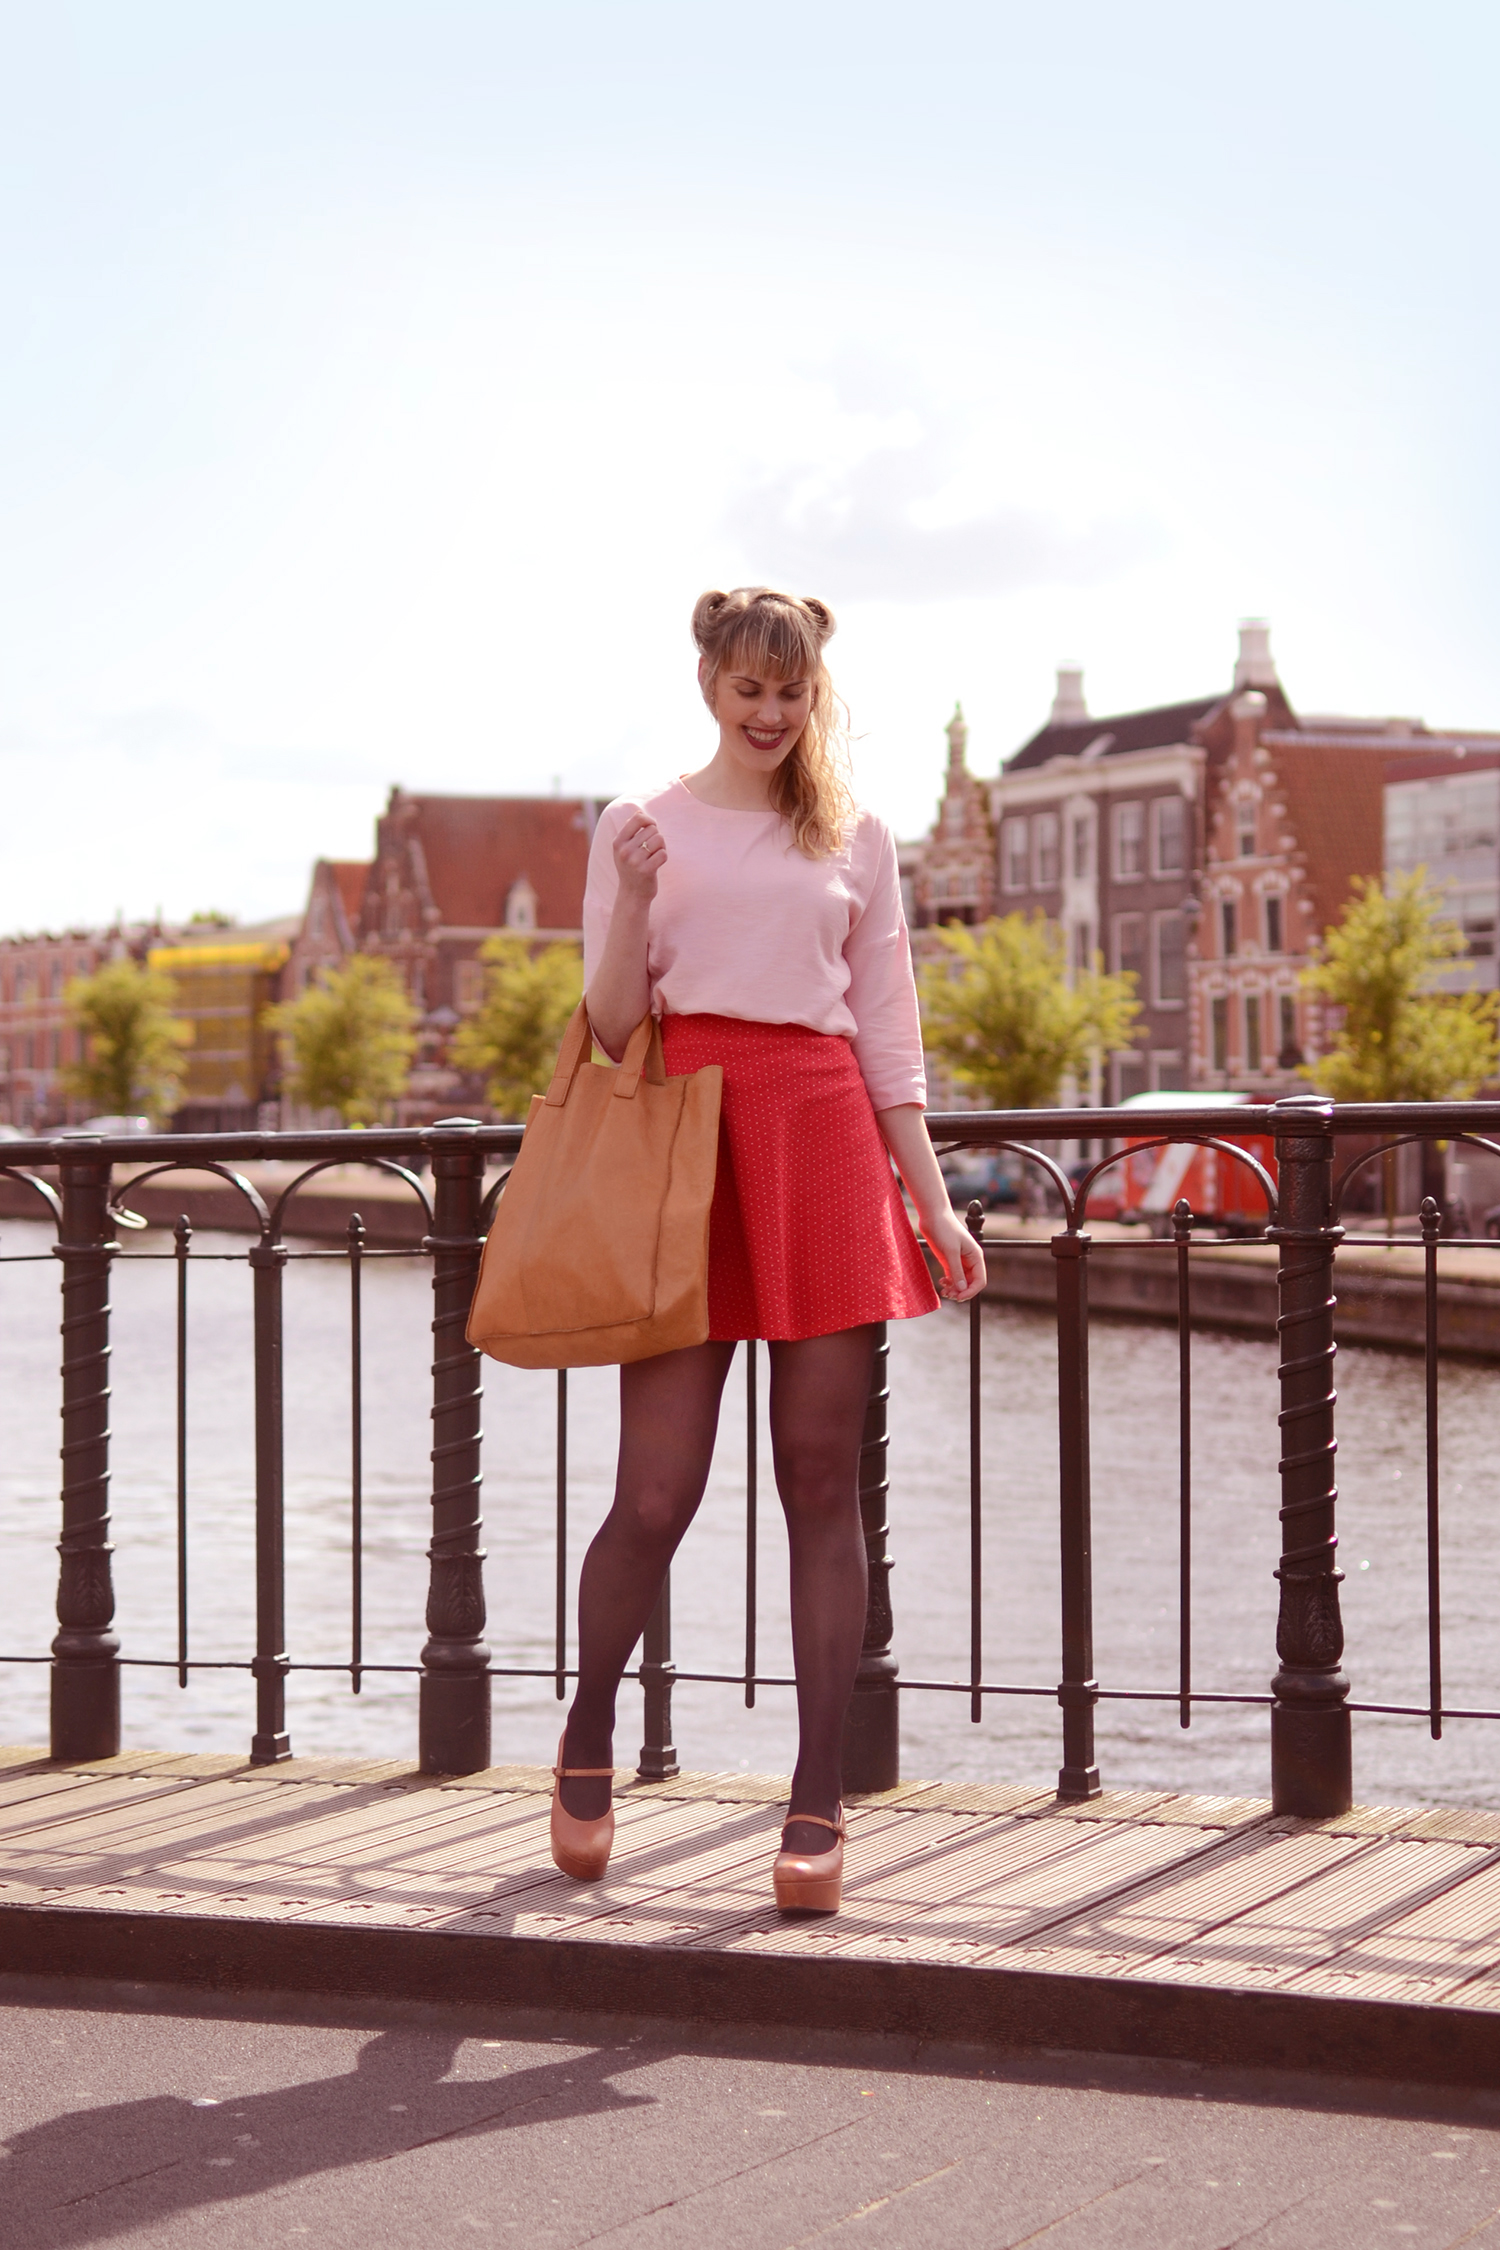 Retromantisch romantisch retro romantic fashion blog vintage style outfit look Wow To Go Who's That Girl WTG sacha wedges ecco paper bag blouse skirt sleehak platforms